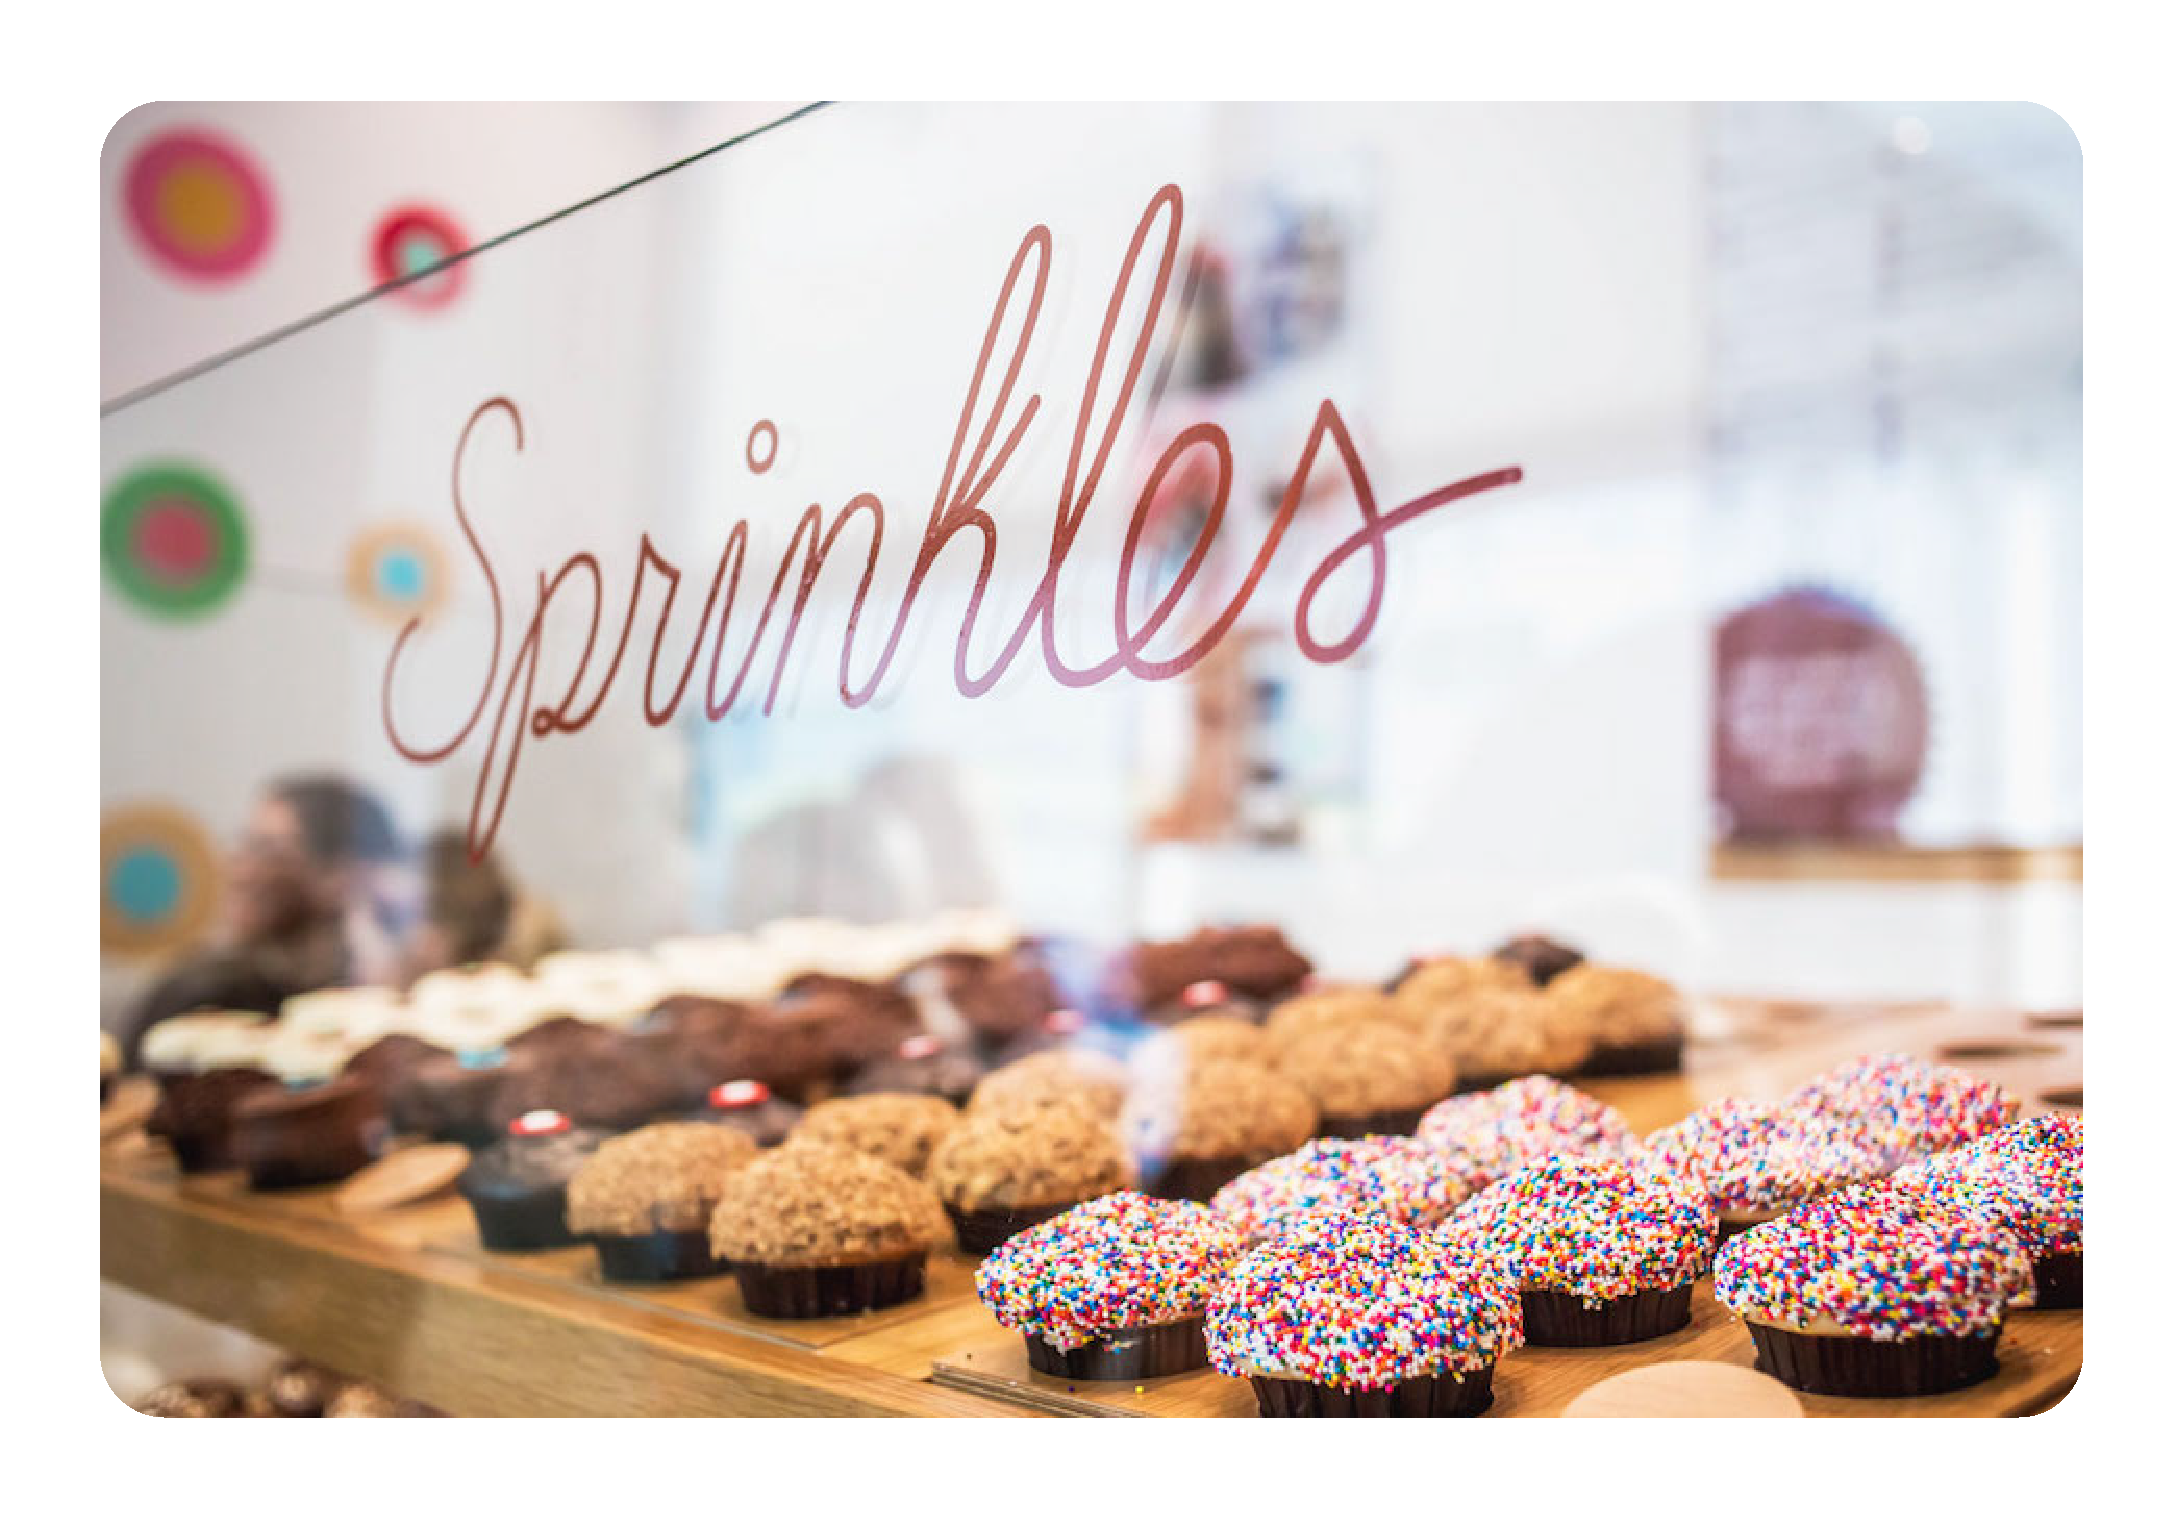 sprinkles rounded edges